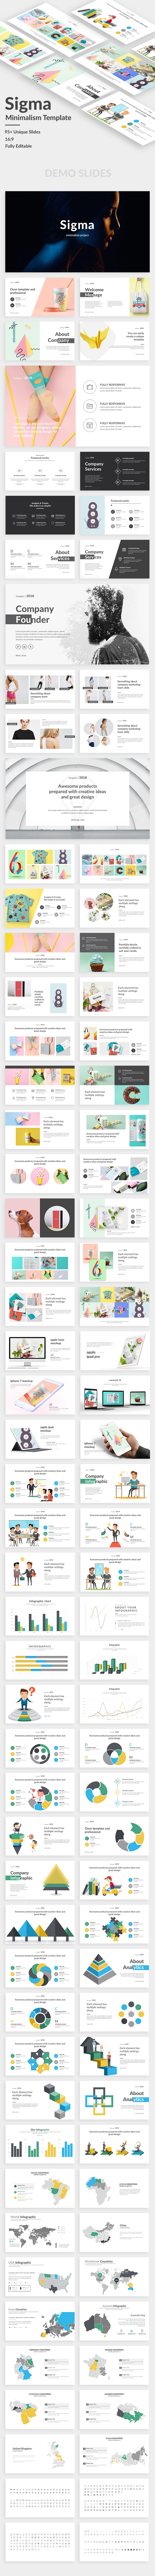 GraphicRiver Sigma Minimalism Project Keynote Template 20793382